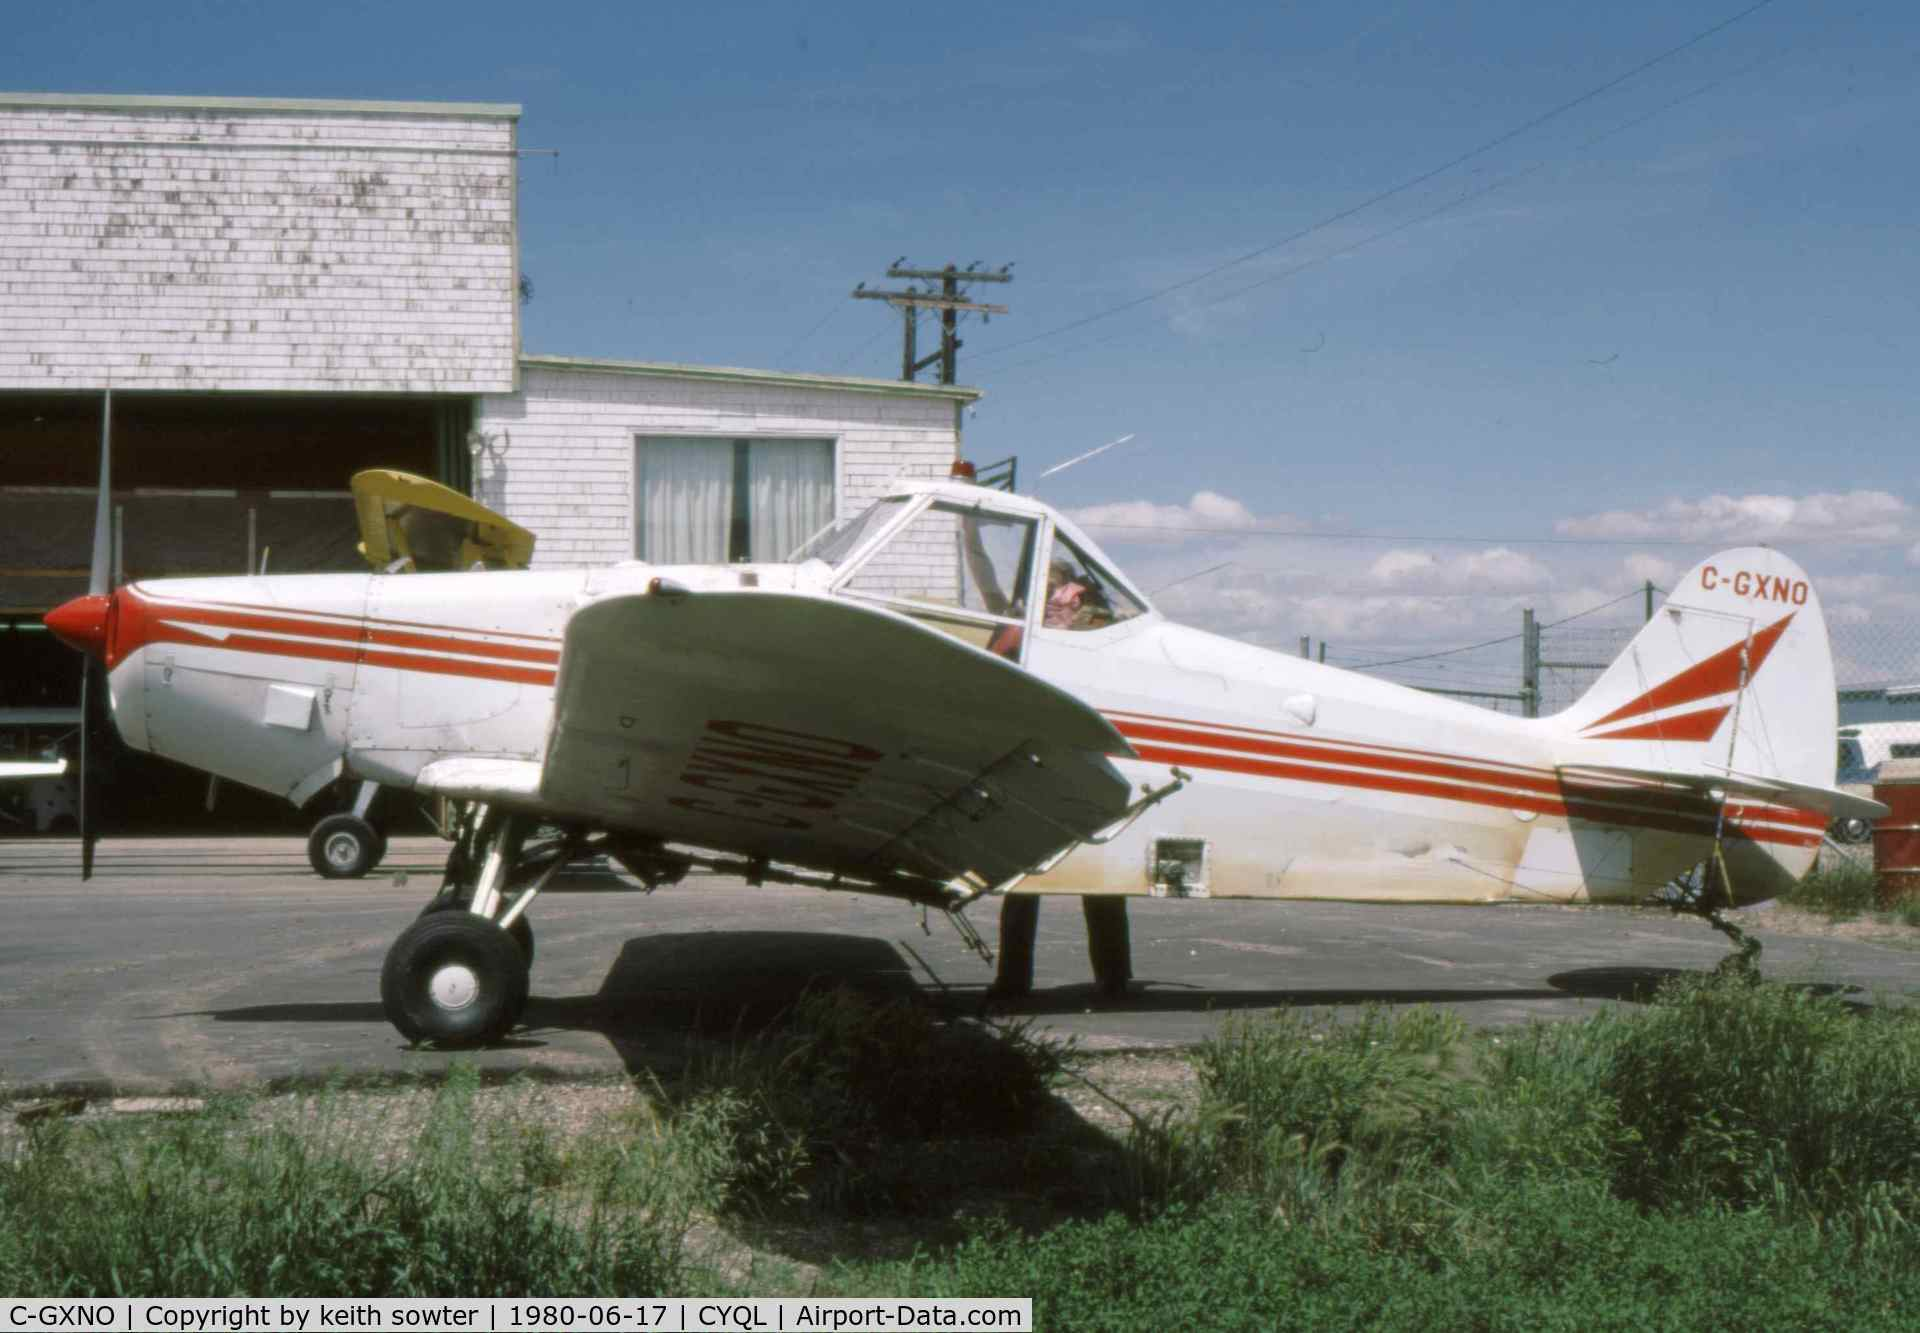 C-GXNO, Piper PA-25-235 C/N 25-3156, Based aircraft